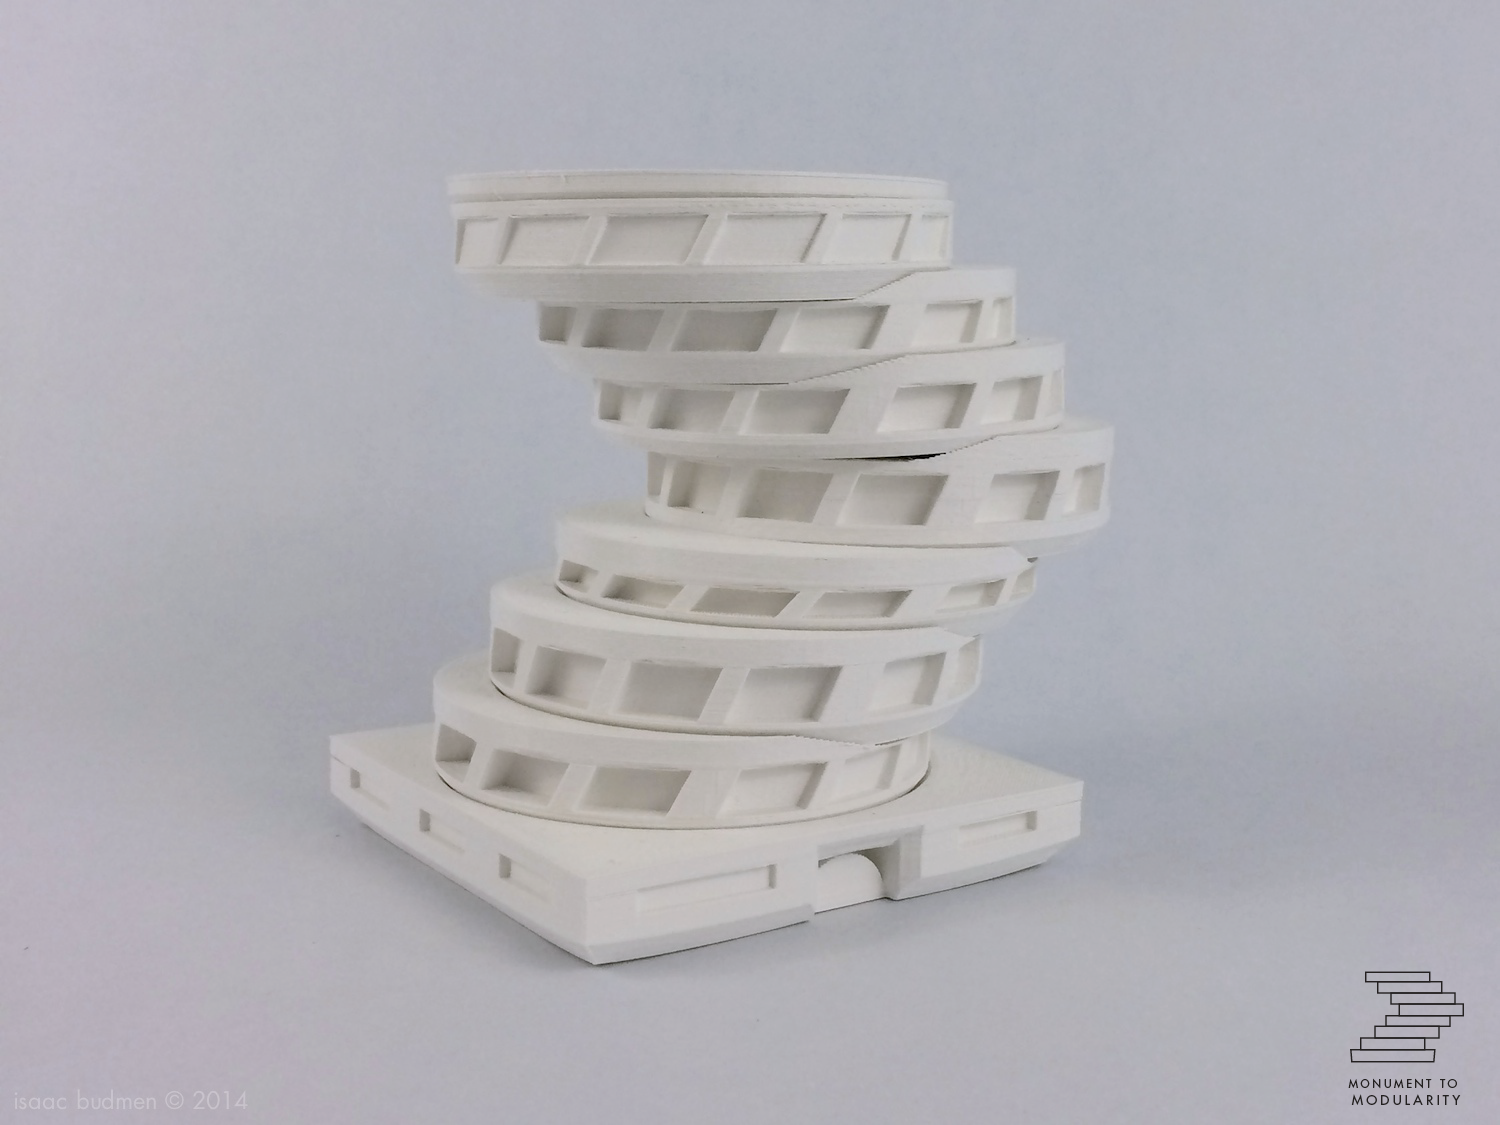 monument-to-modularity2.png Download free STL file Monument to modularity • 3D print model, BEEVERYCREATIVE